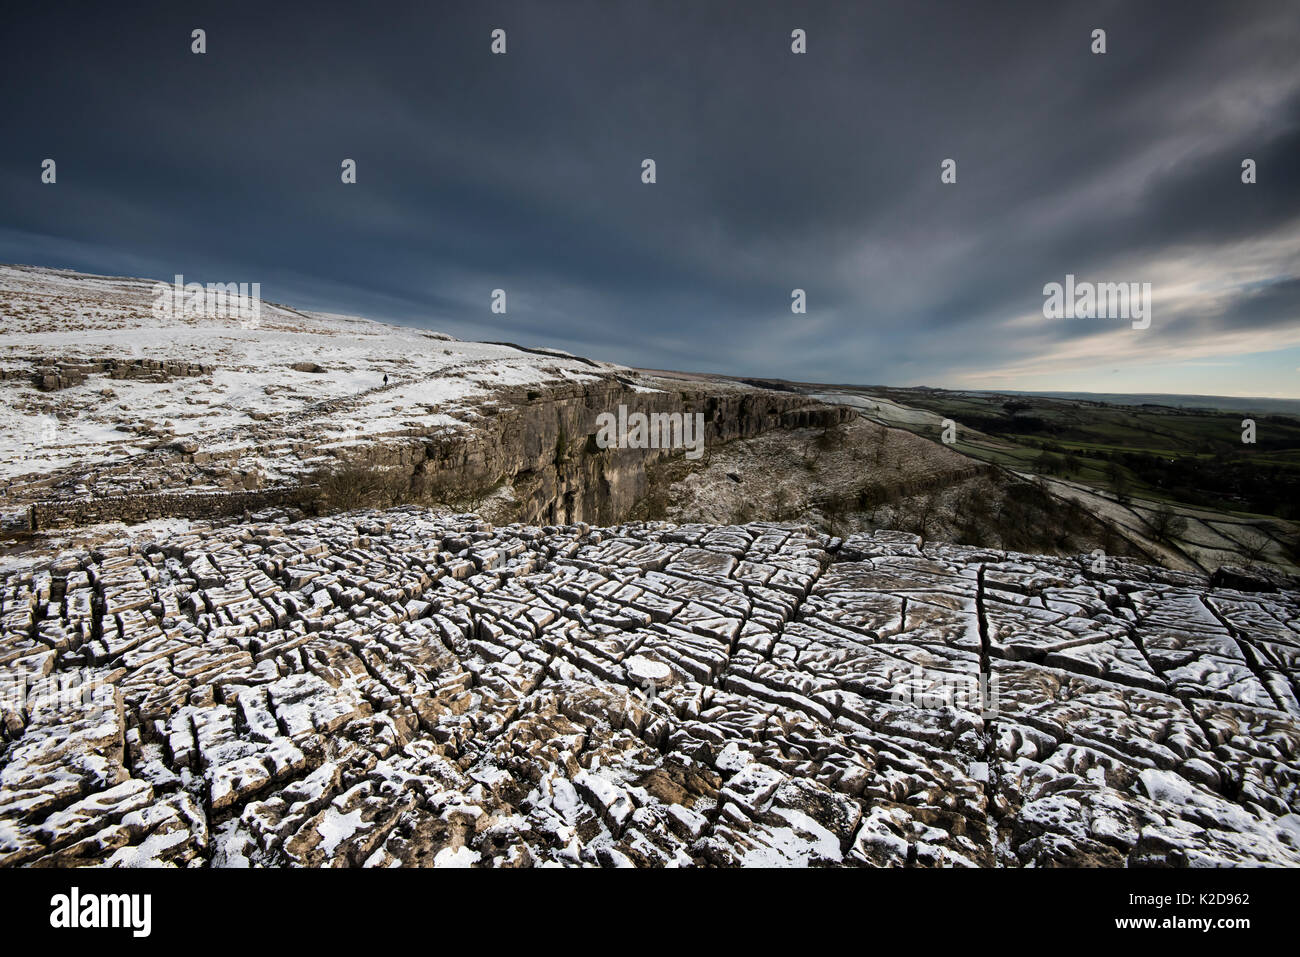 Carboniferous Limestone pavement above Malham Cove, with light dusting of snow, Yorkshire, UK.  January 2014 Stock Photo